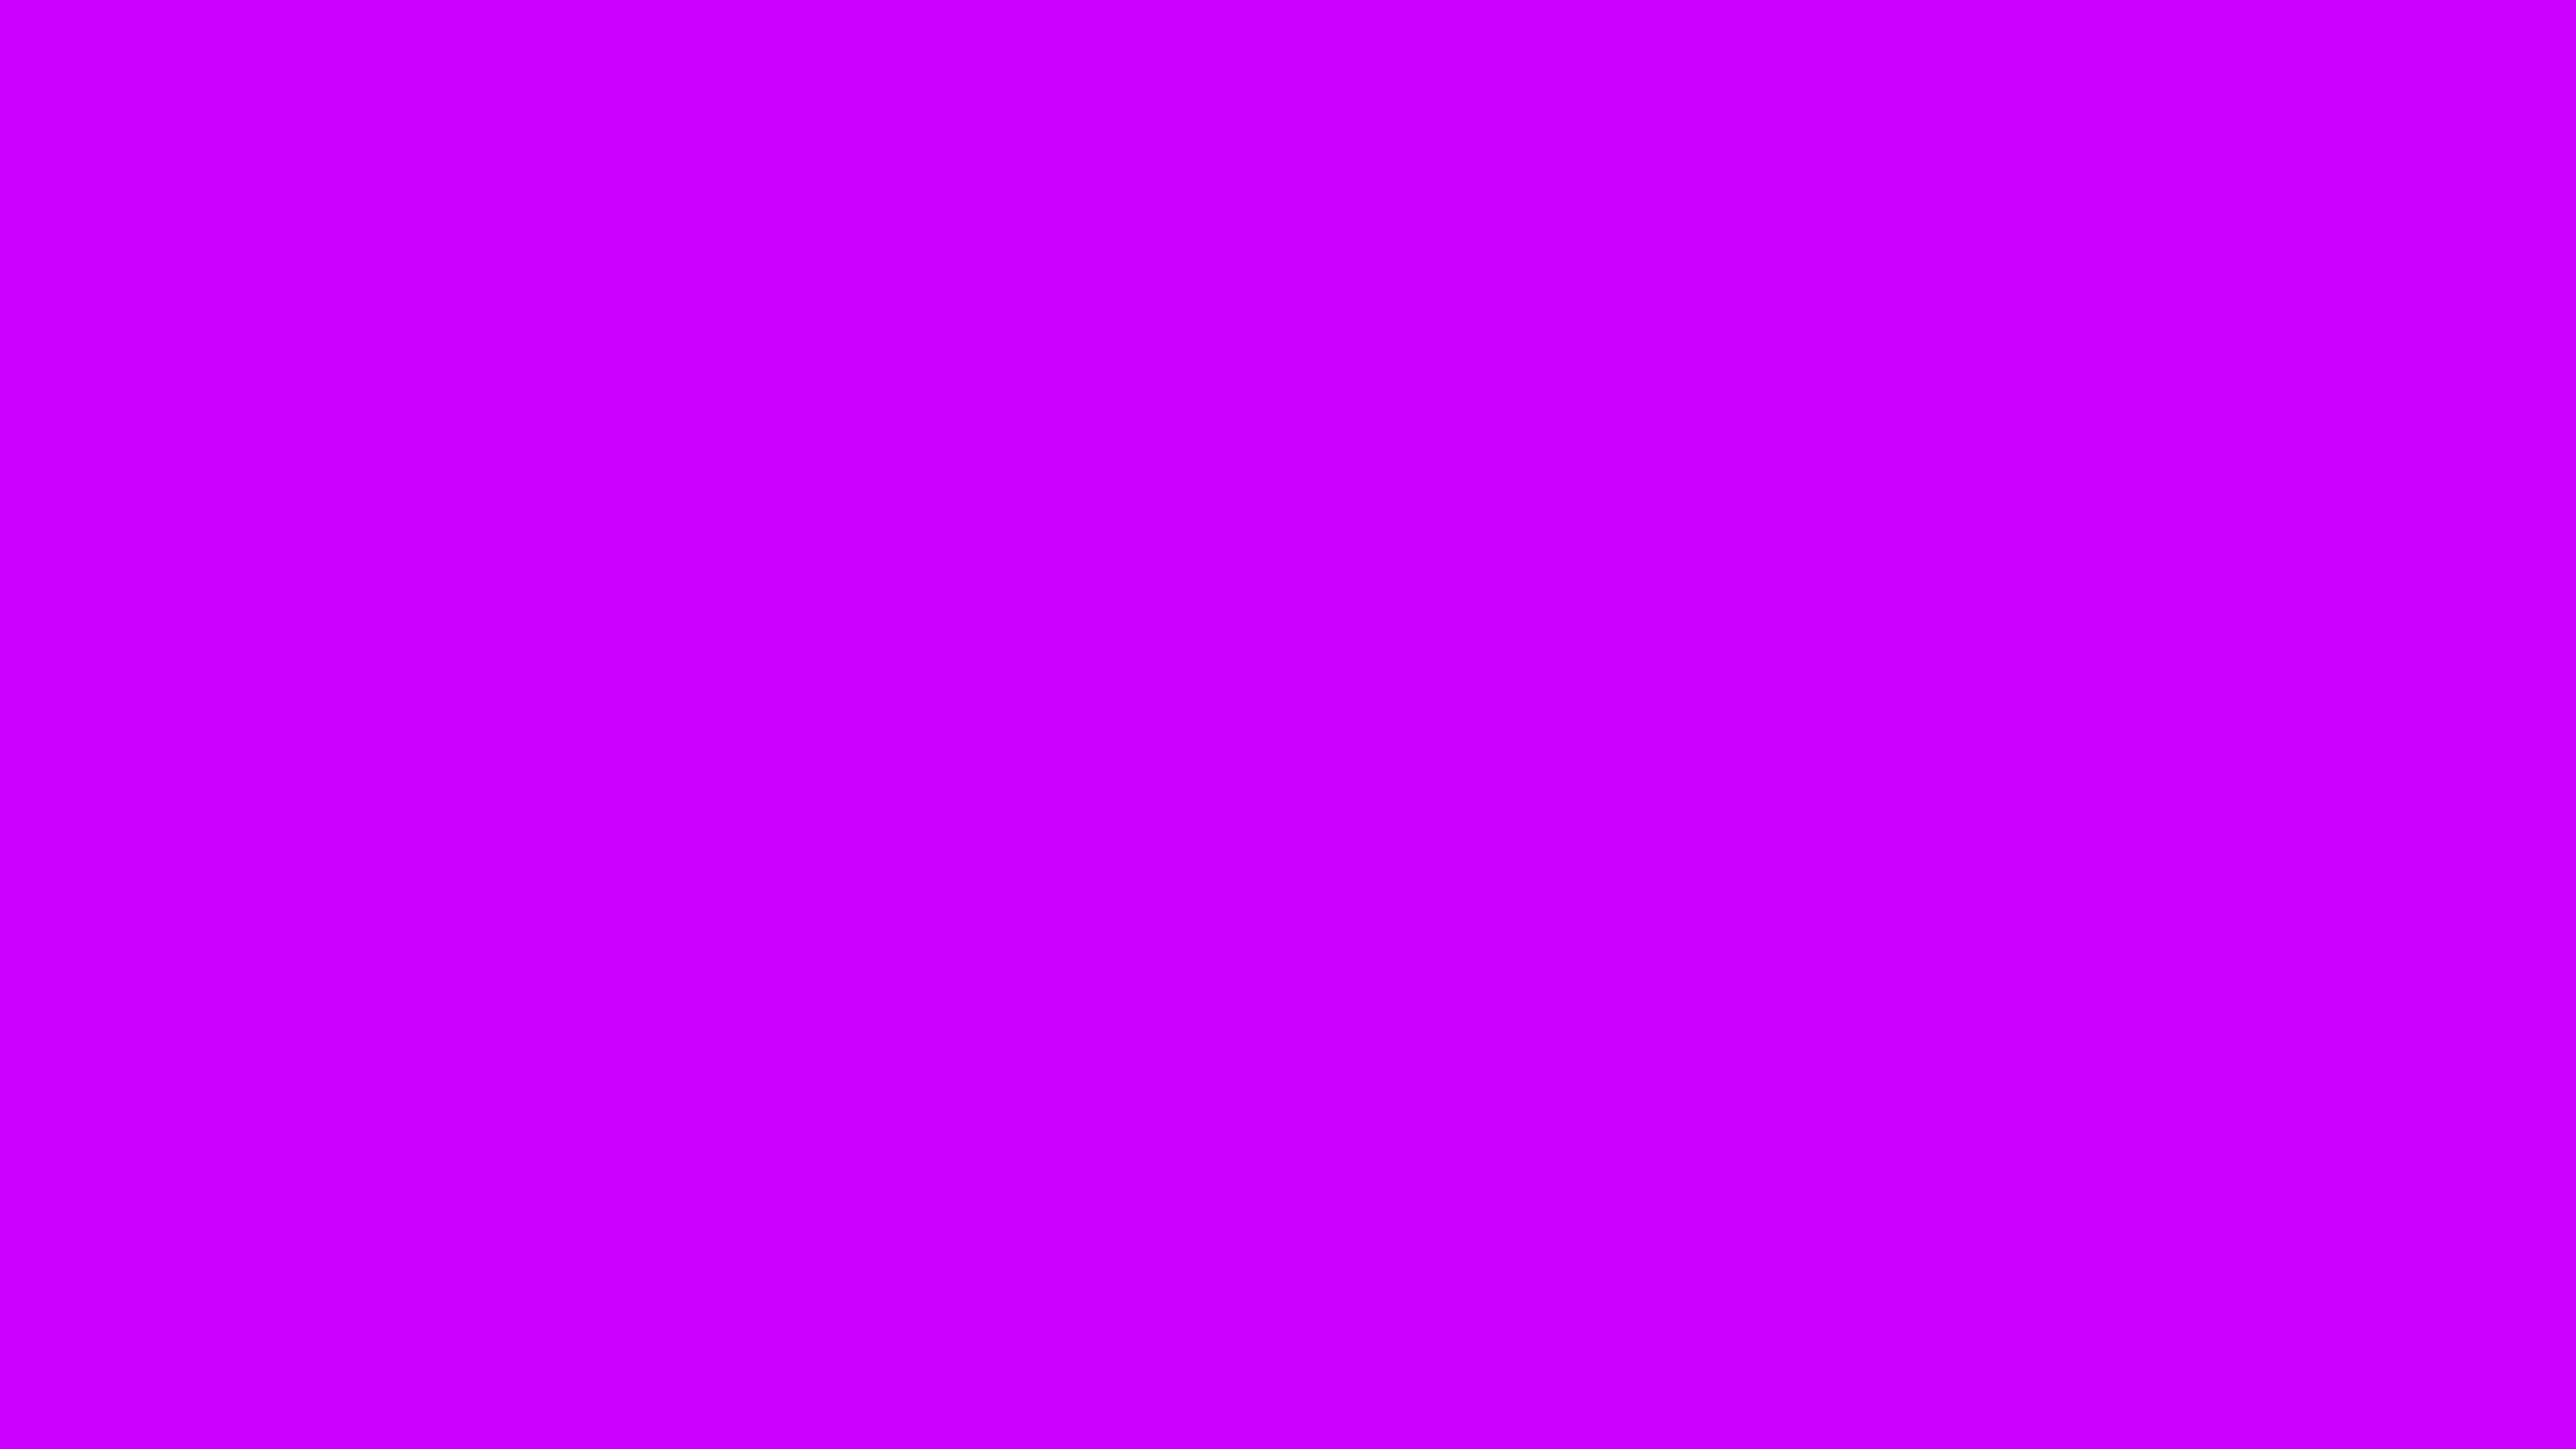 5120x2880 Vivid Orchid Solid Color Background